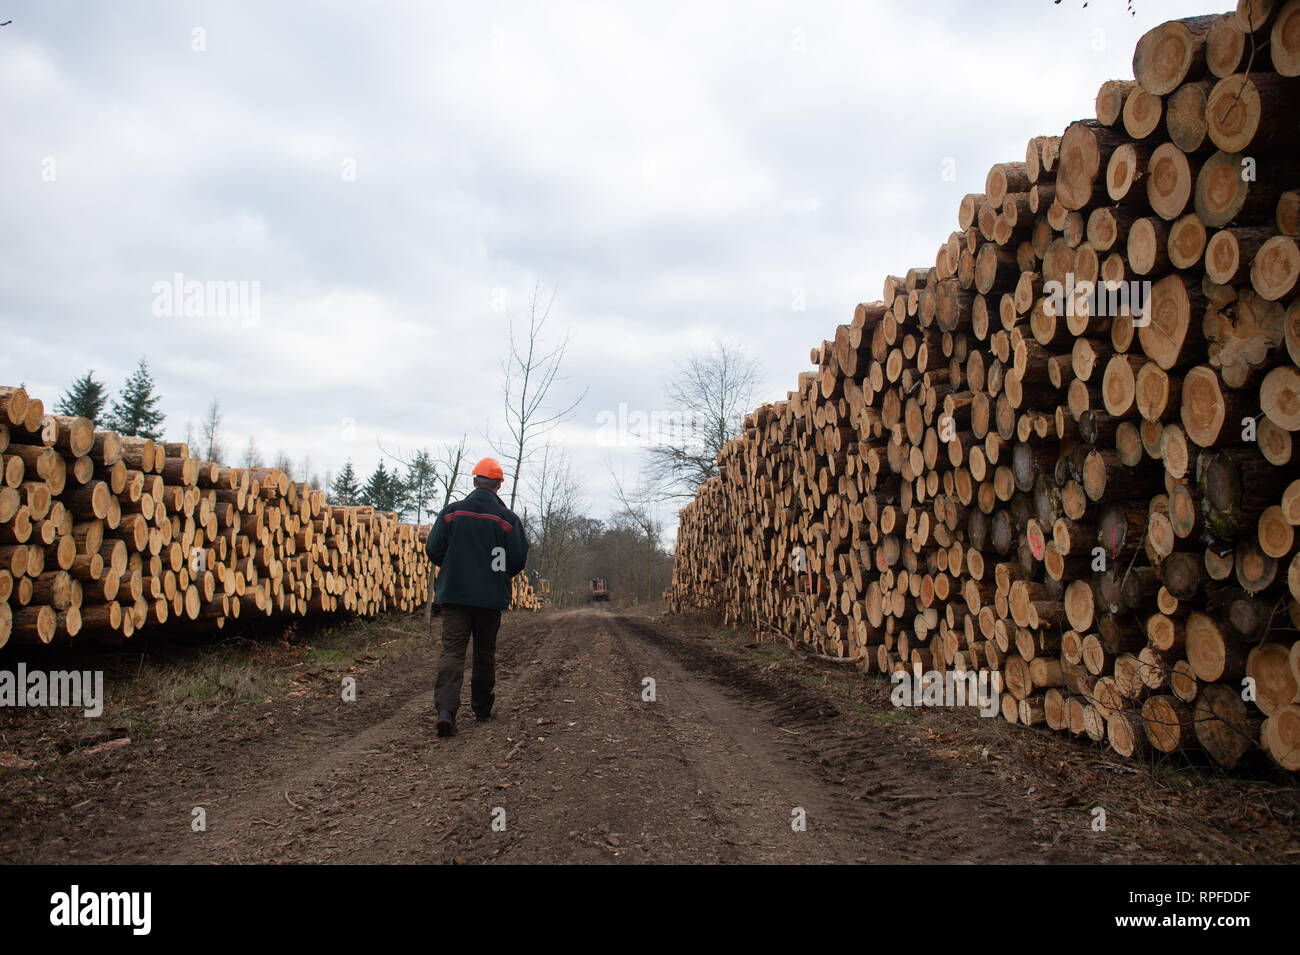 21 February 2019, Saxony-Anhalt, Flechtingen: Thomas Roßbach, head of the forestry department of the Landeszentrum Wald Sachsen-Anhalt, passes several metres high dams of conifers. The trees had been attacked by pests and thus weakened. At present, entire forest areas near Flechtingen are being cleared in order to counteract mass propagation of the pests. The foresters of the Landeszentrum Wald Sachsen-Anhalt attribute the damage to the coniferous forests to the drought in 2018. After the sick trees have been cleared, they are to be reforested with climate-resistant and site-suitable tree spec - Stock Image